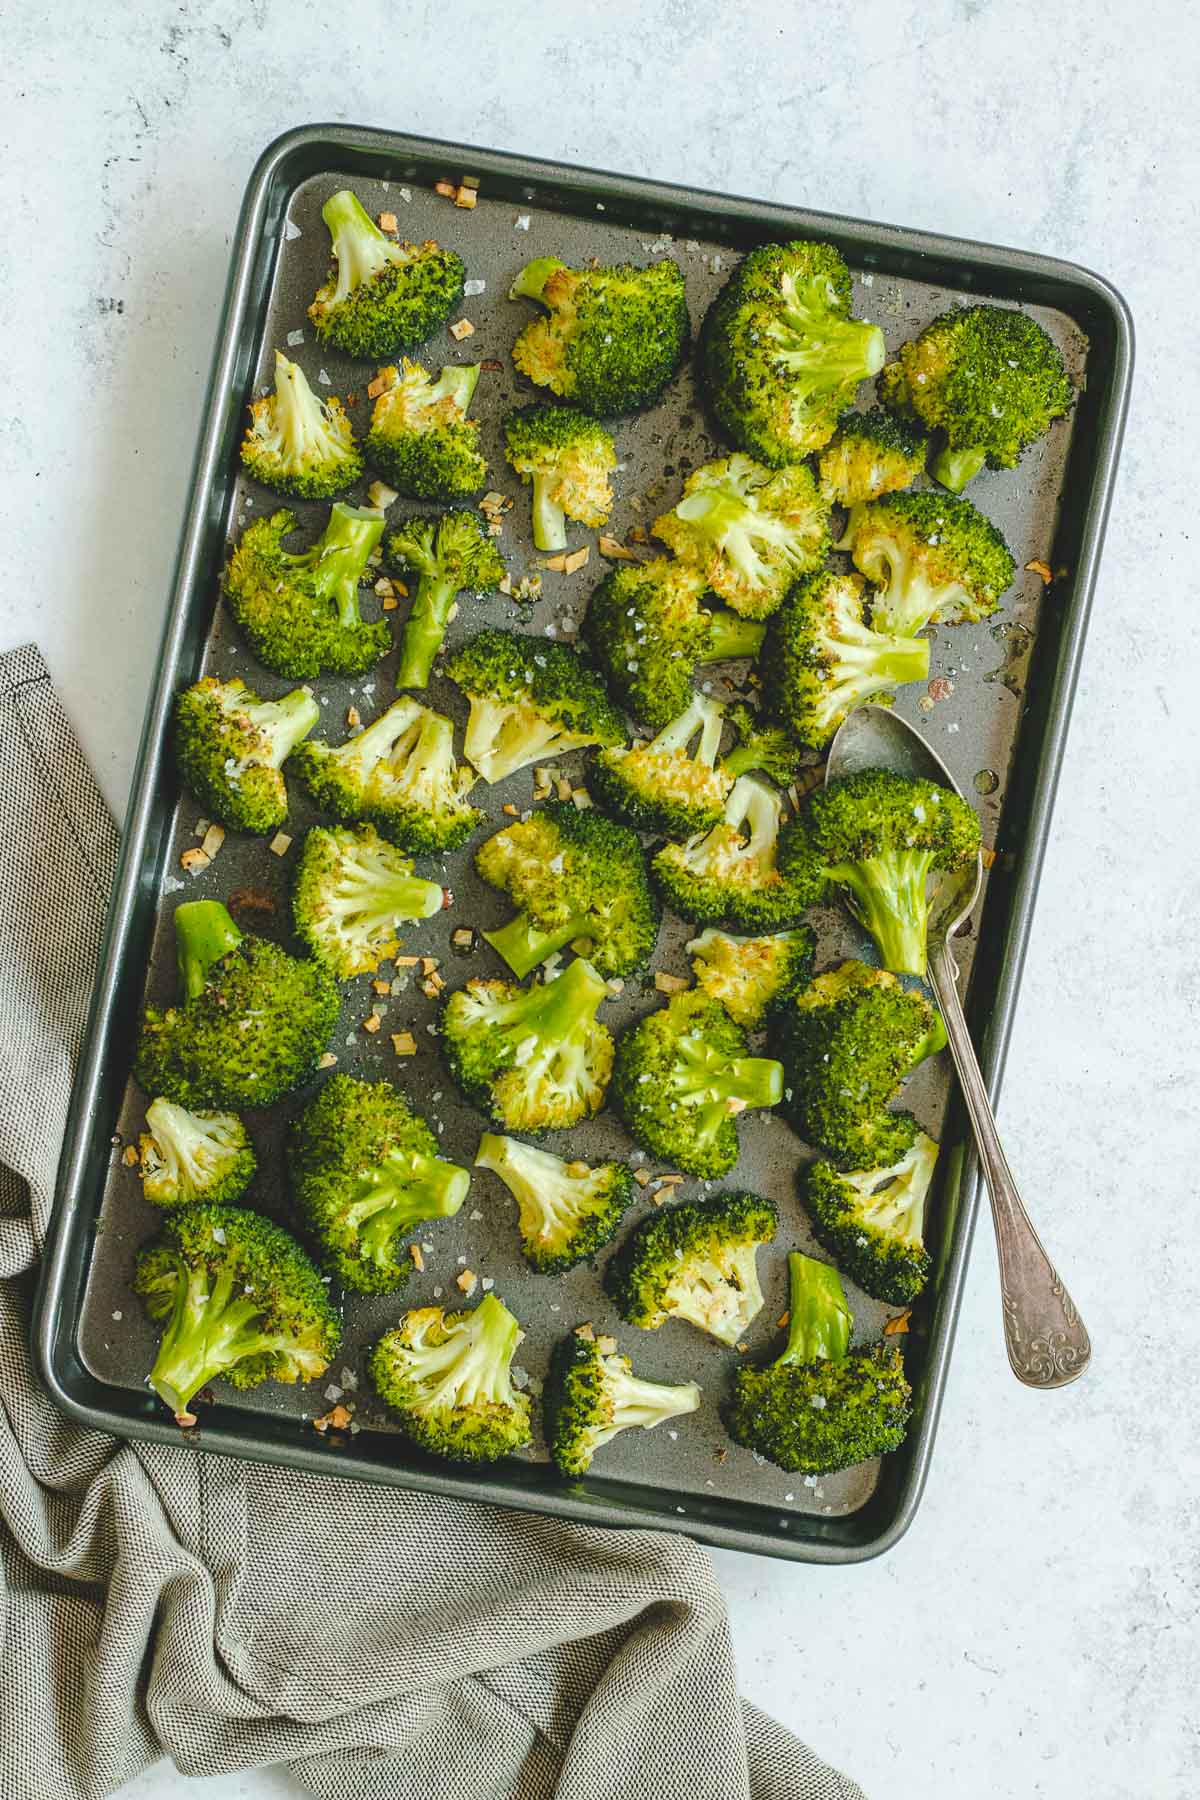 Roasted Broccoli with Garlic finished in pan